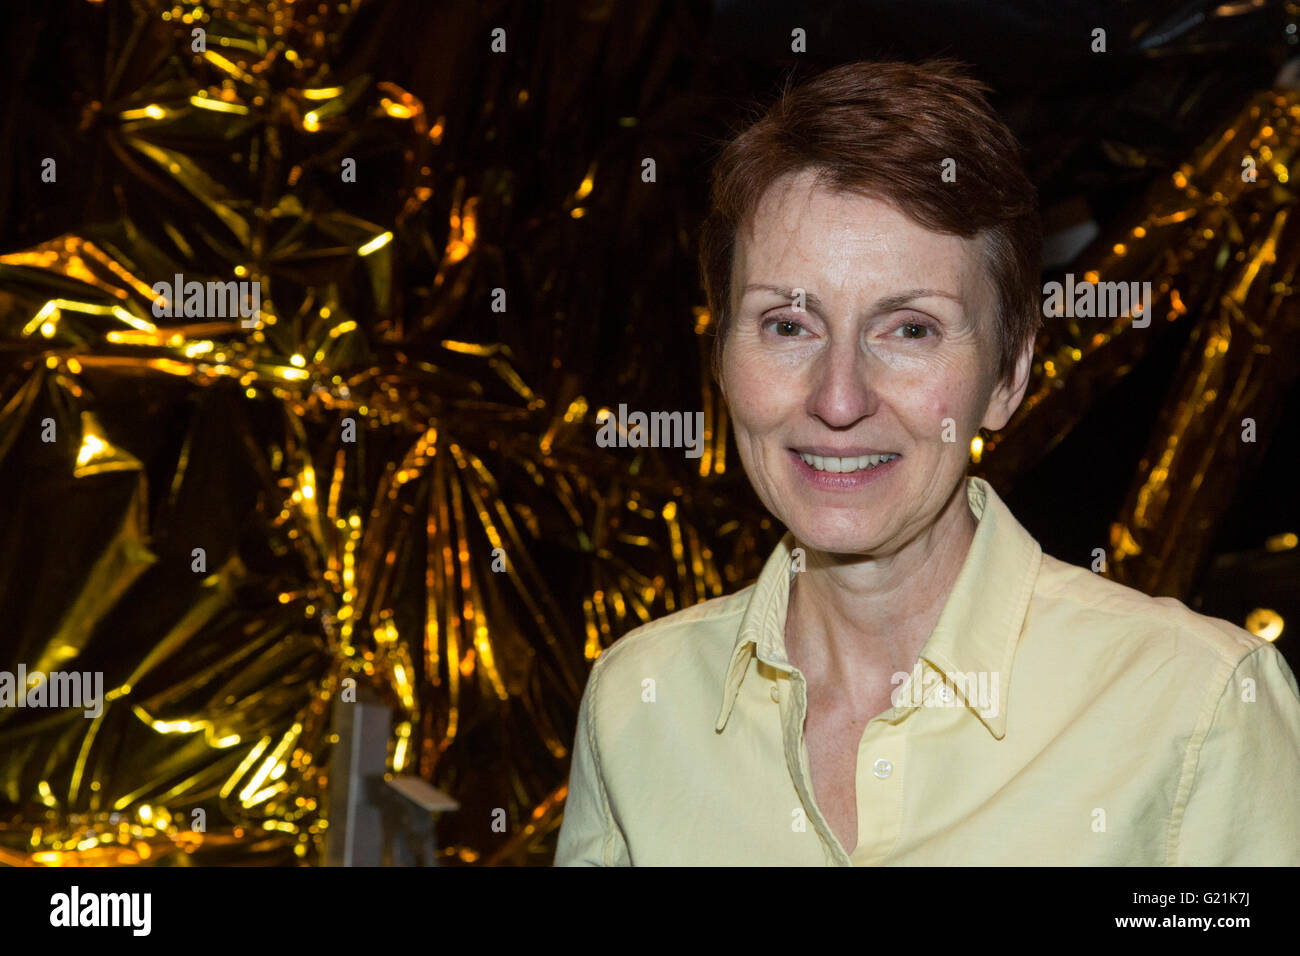 London, UK. 20 May 2016. Helen Sharman celebrates 25 years as first UK astronaut at the Science Museum. She is joined - Stock Image